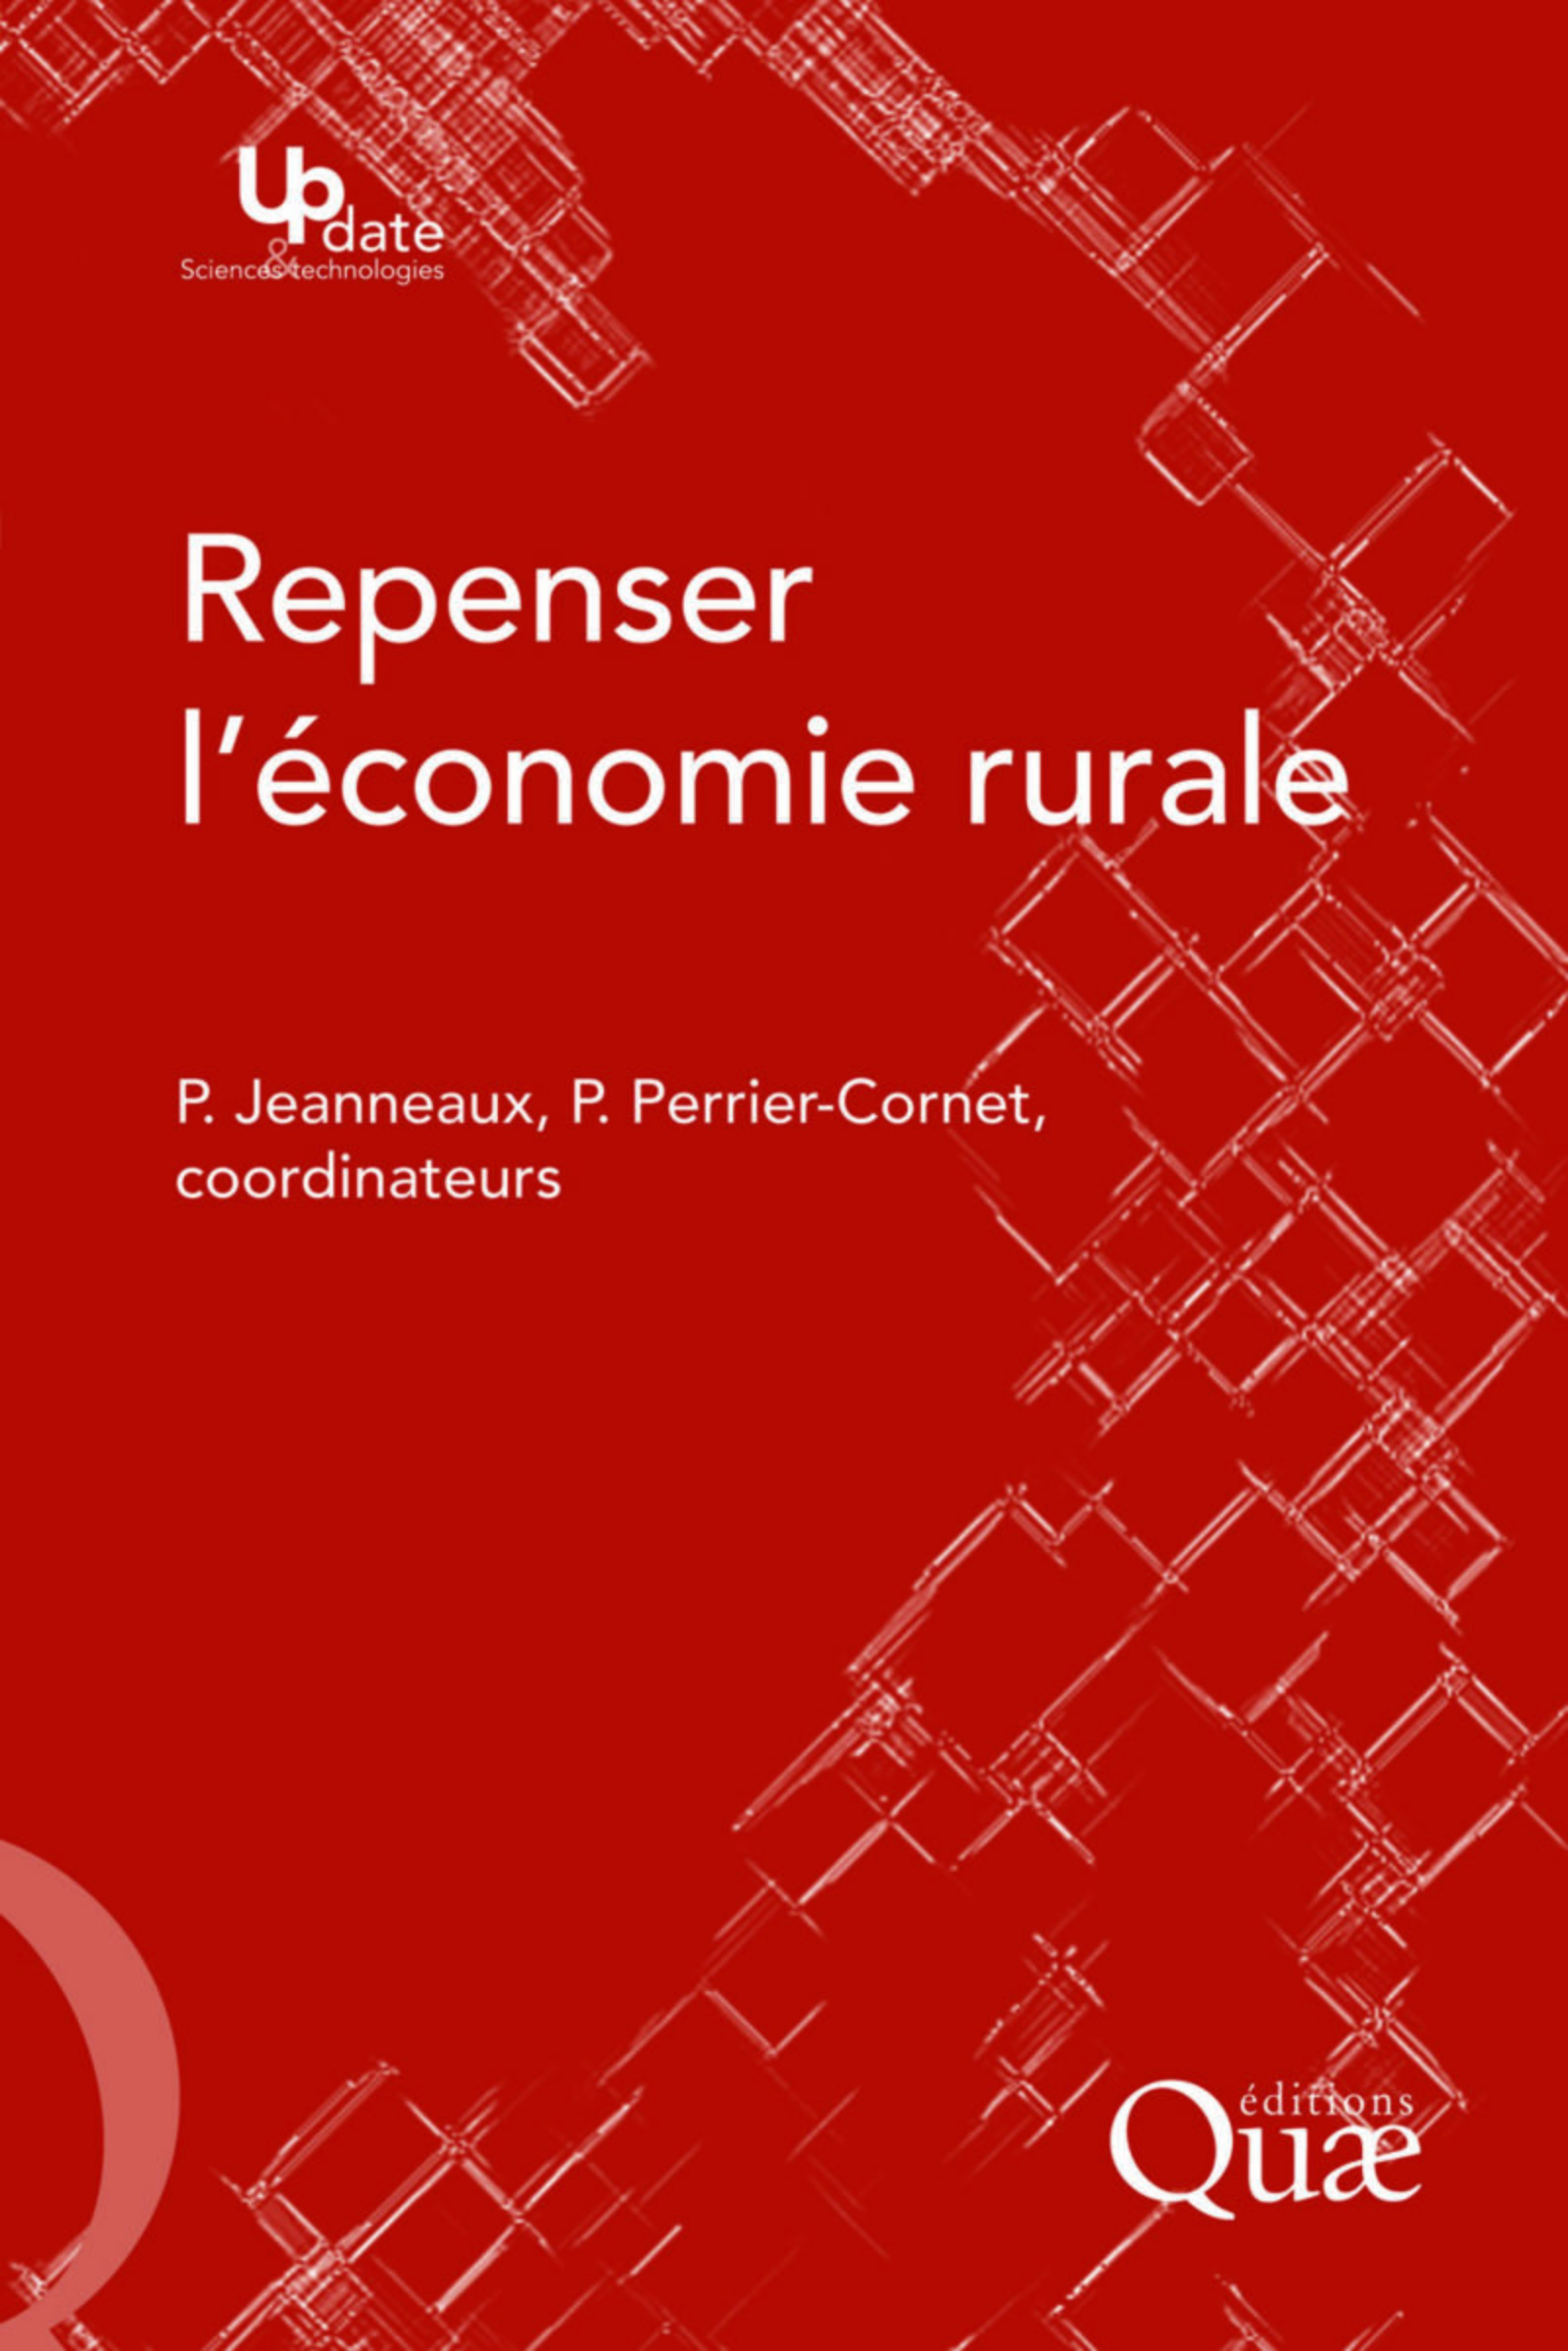 REPENSER L'ECONOMIE RURALE